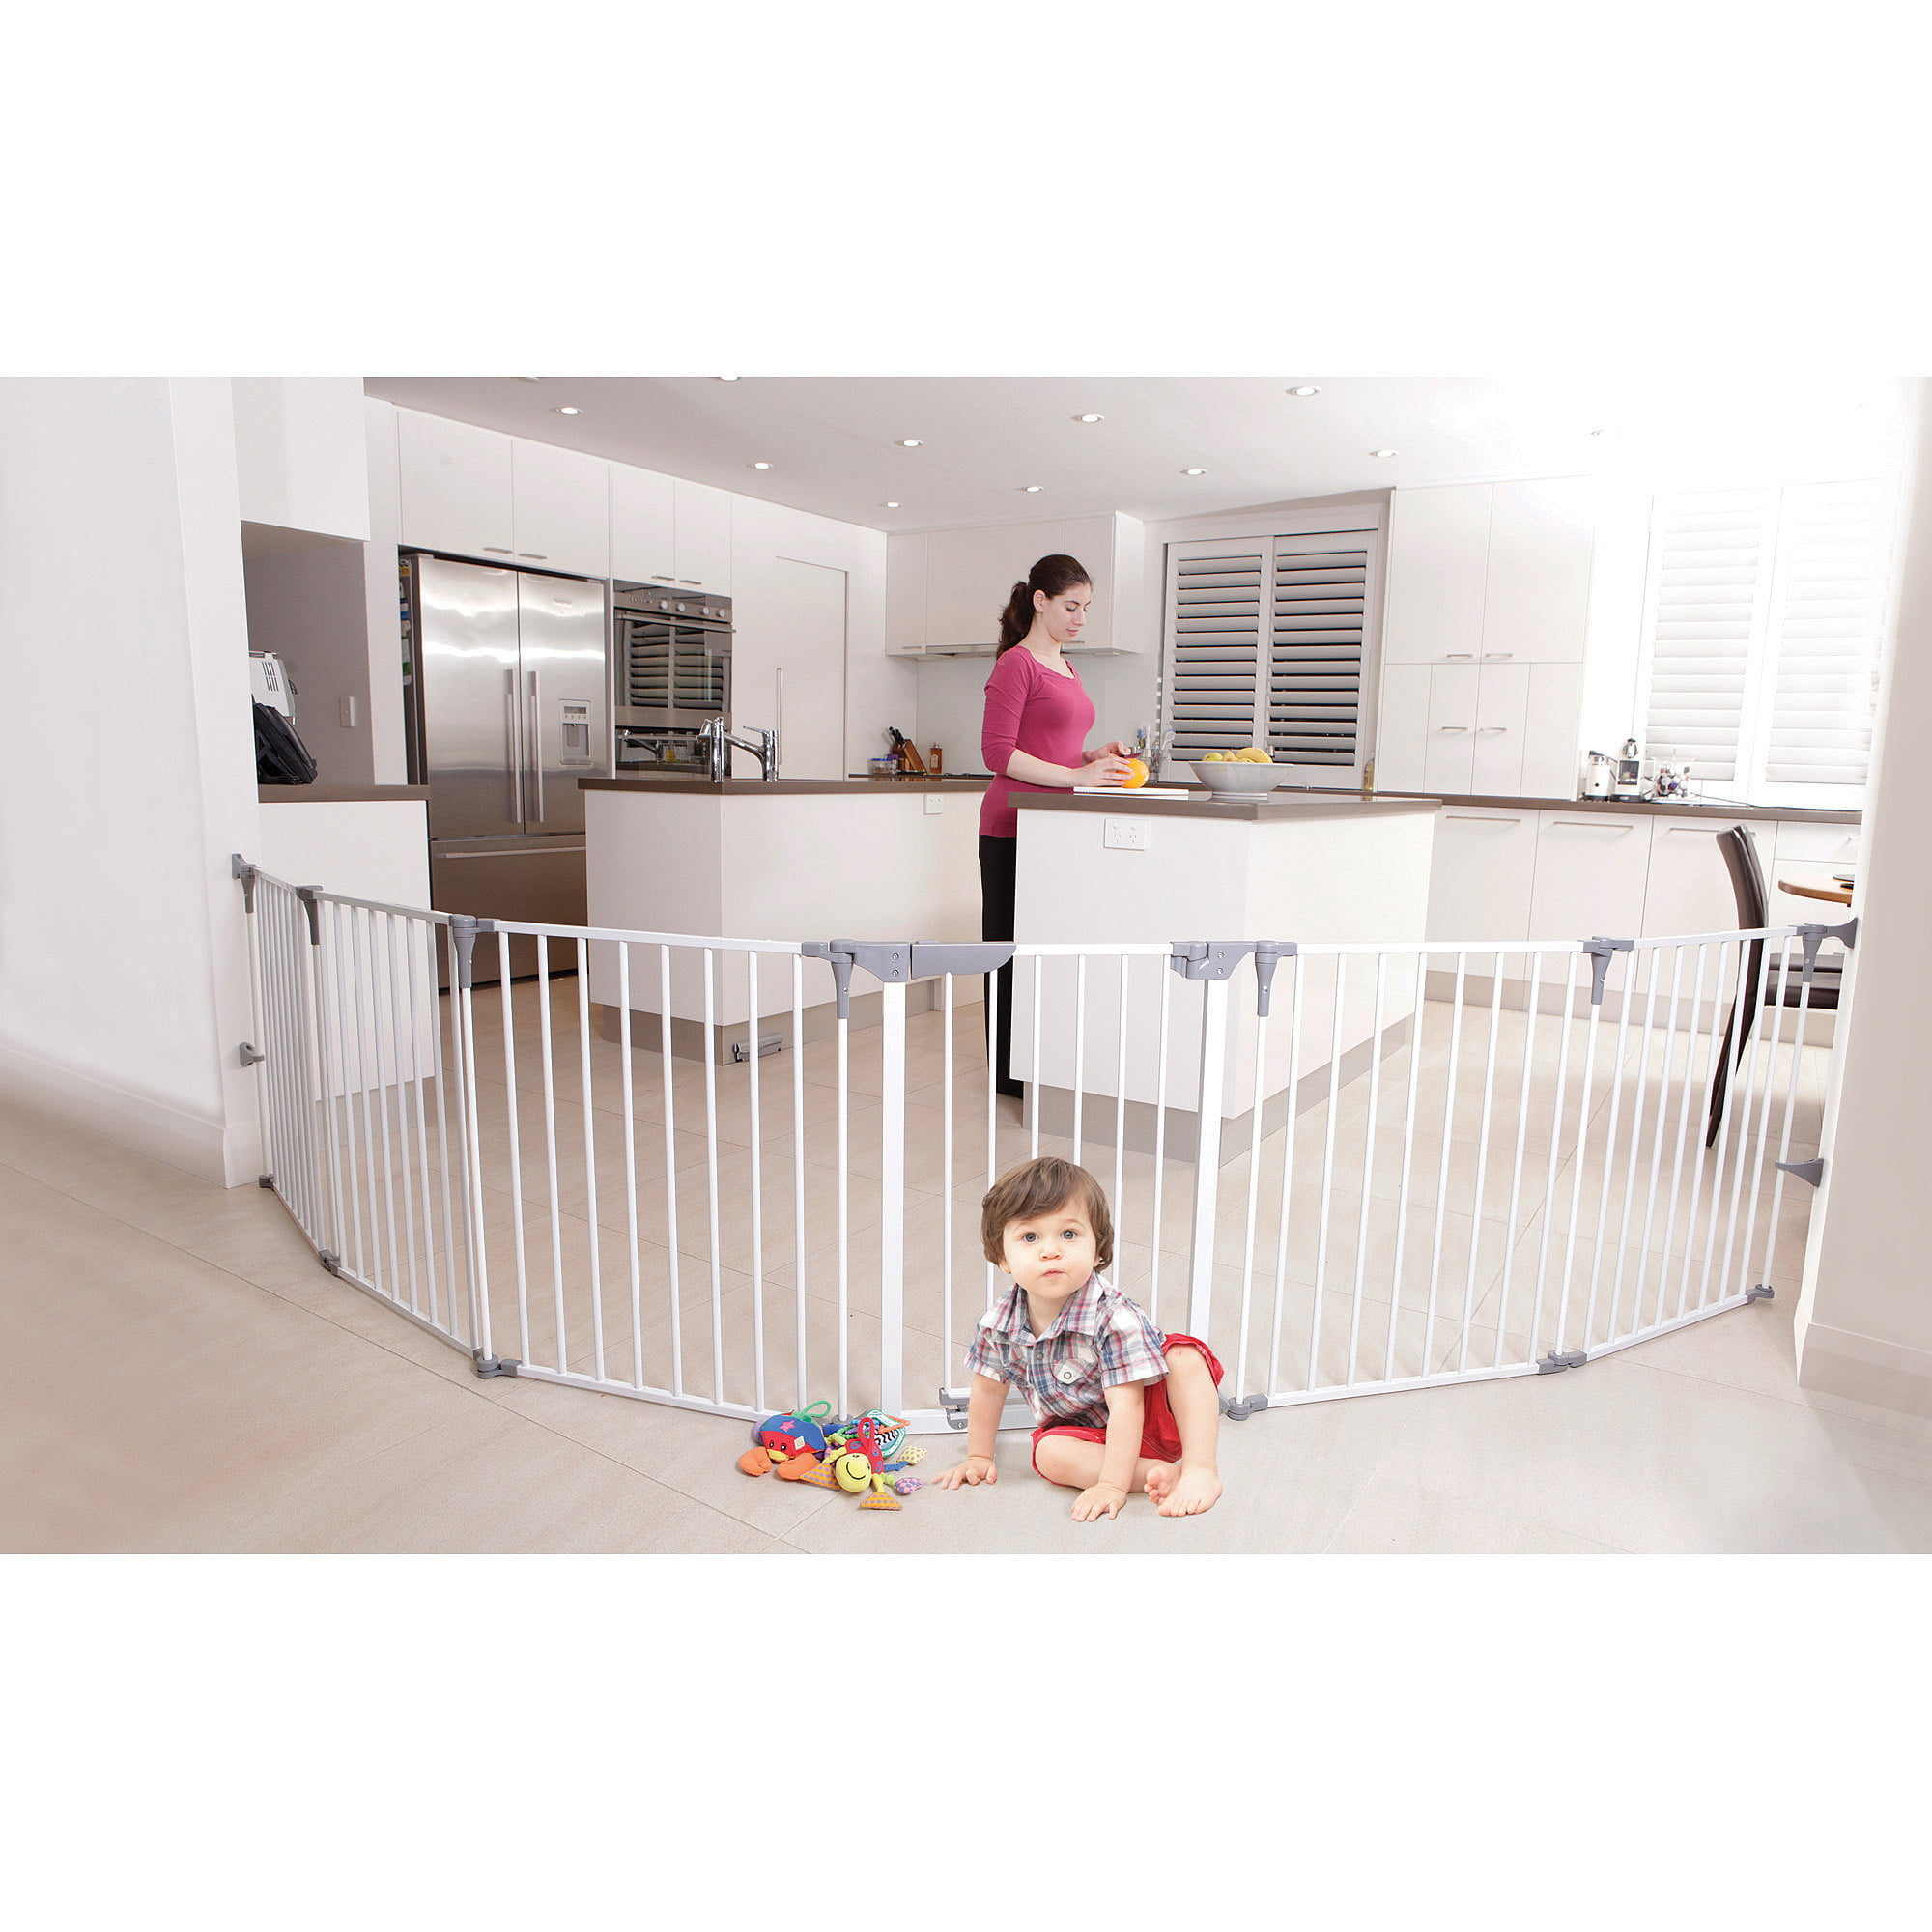 Dreambaby Royale 3 In 1 Converta Play Pen Gate Fits Up To 151